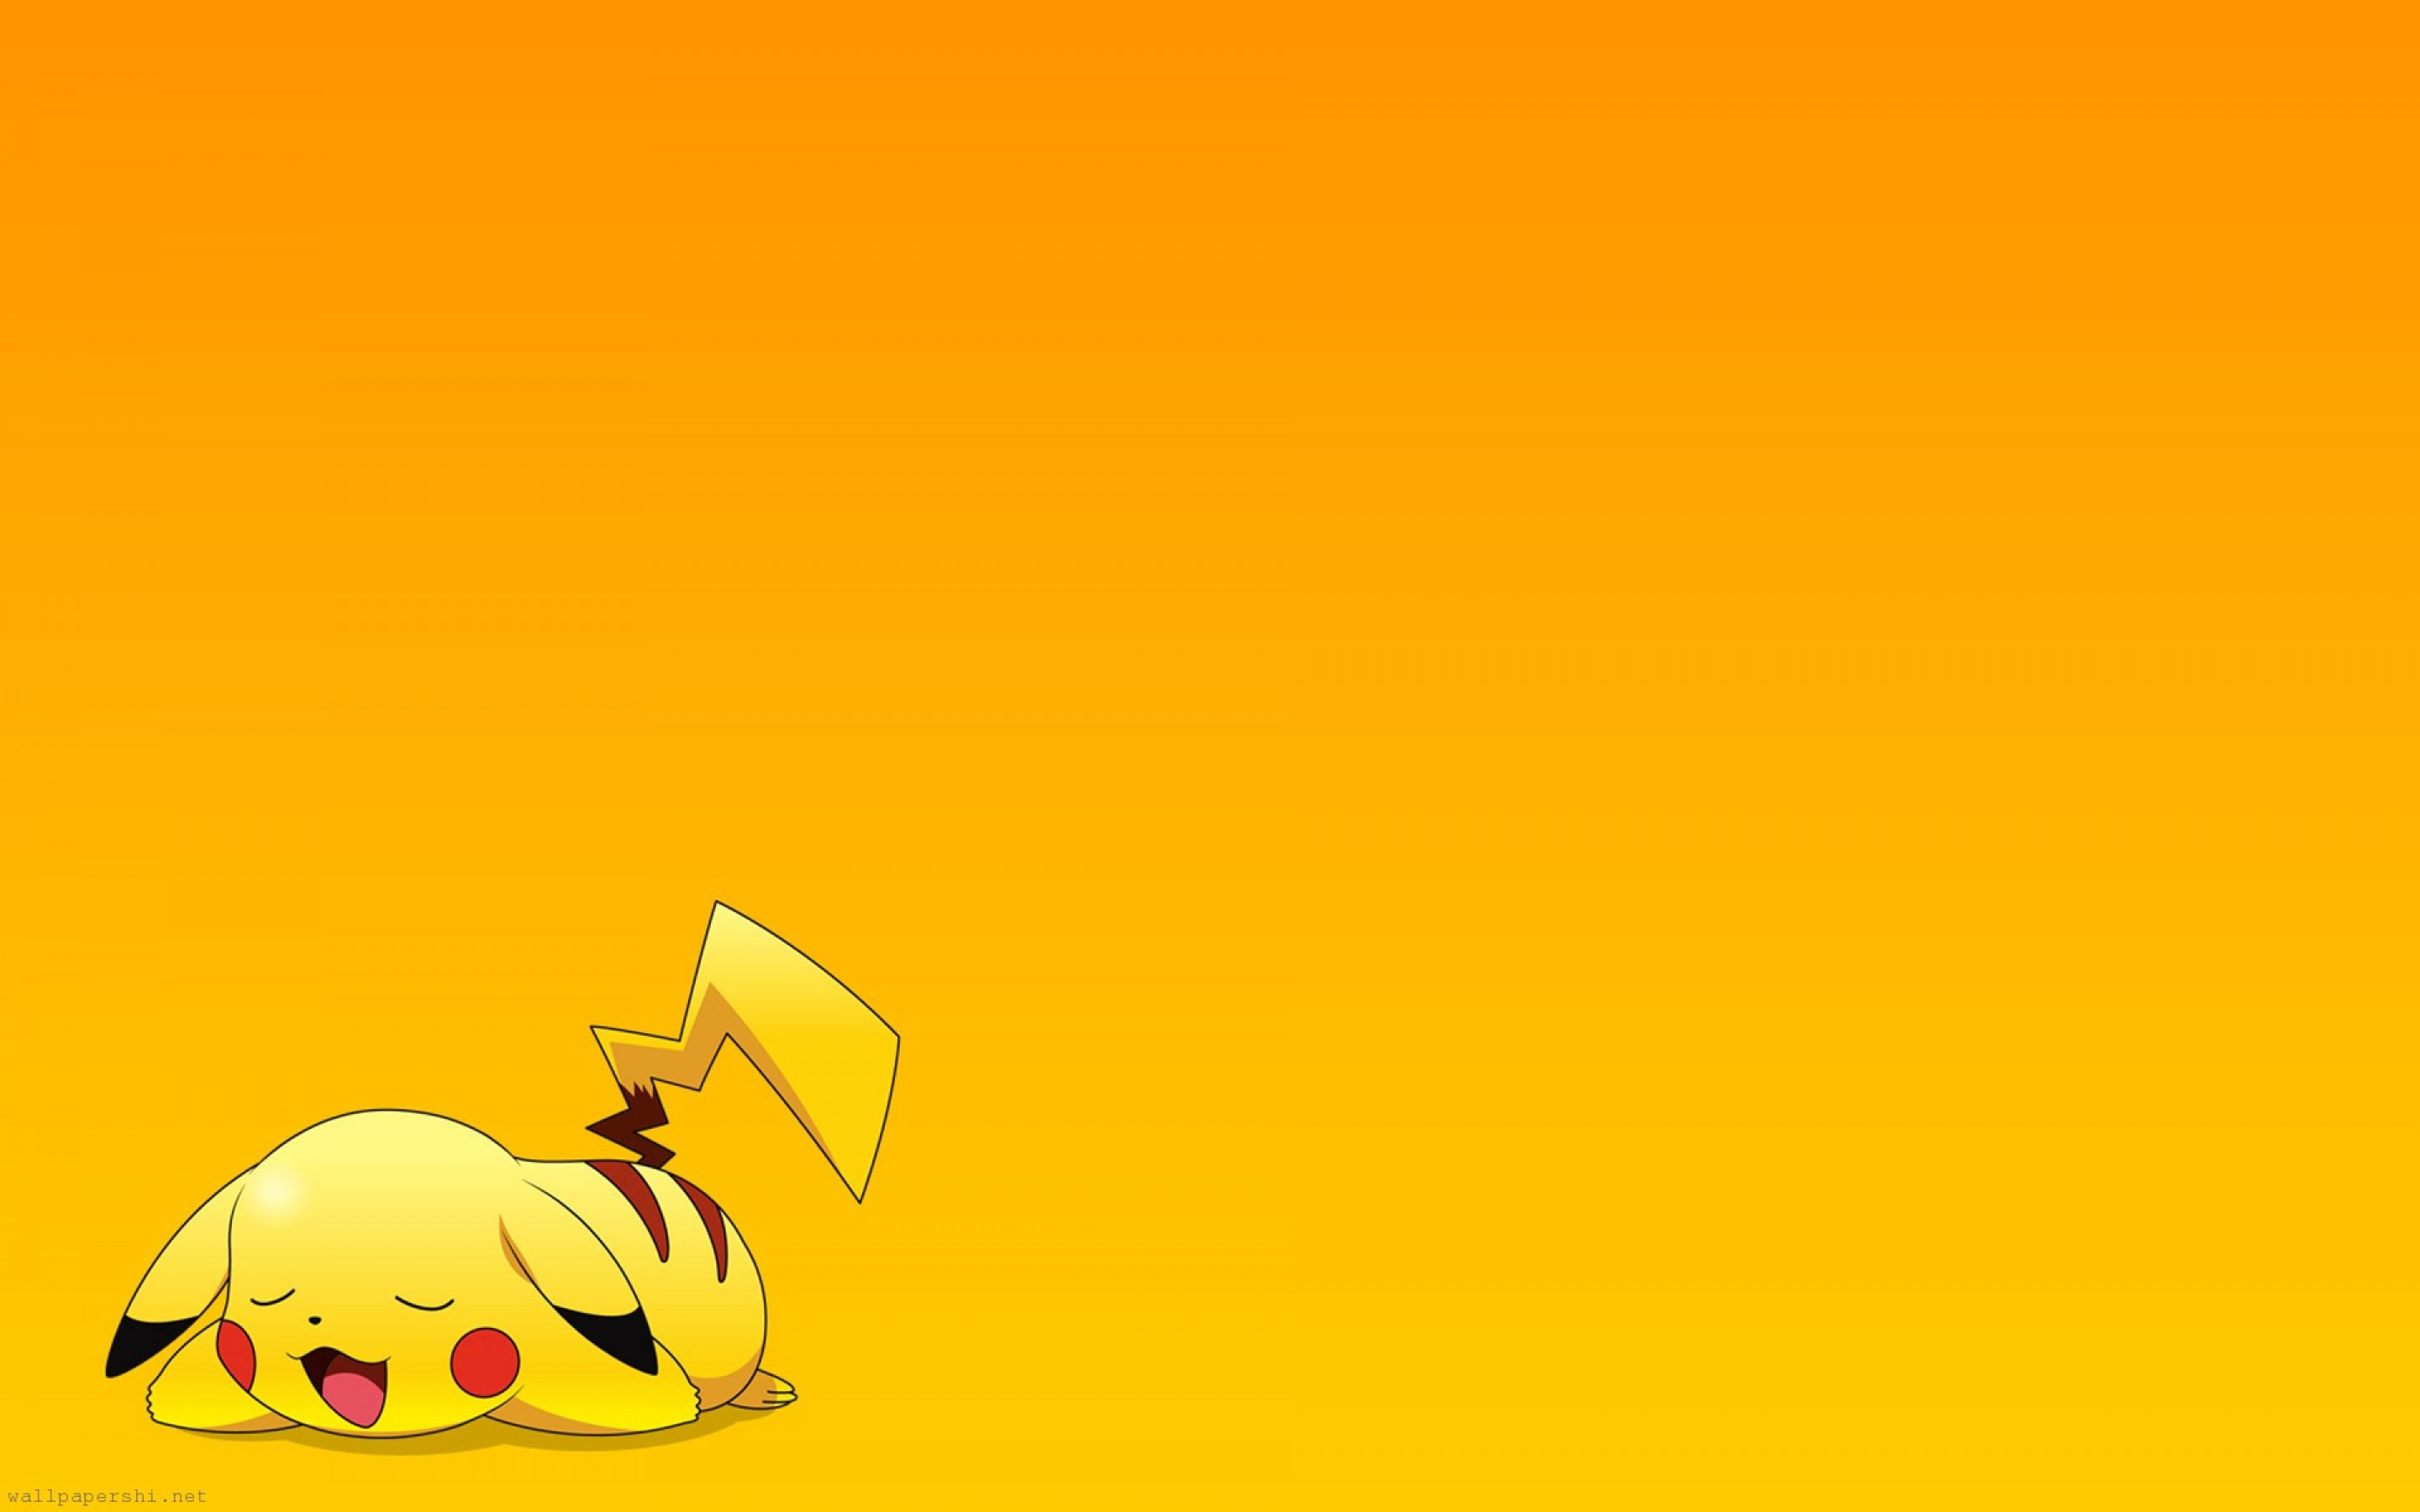 Download Pokemon Pikachu Wallpaper HD 2889 Full Size 2880x1800